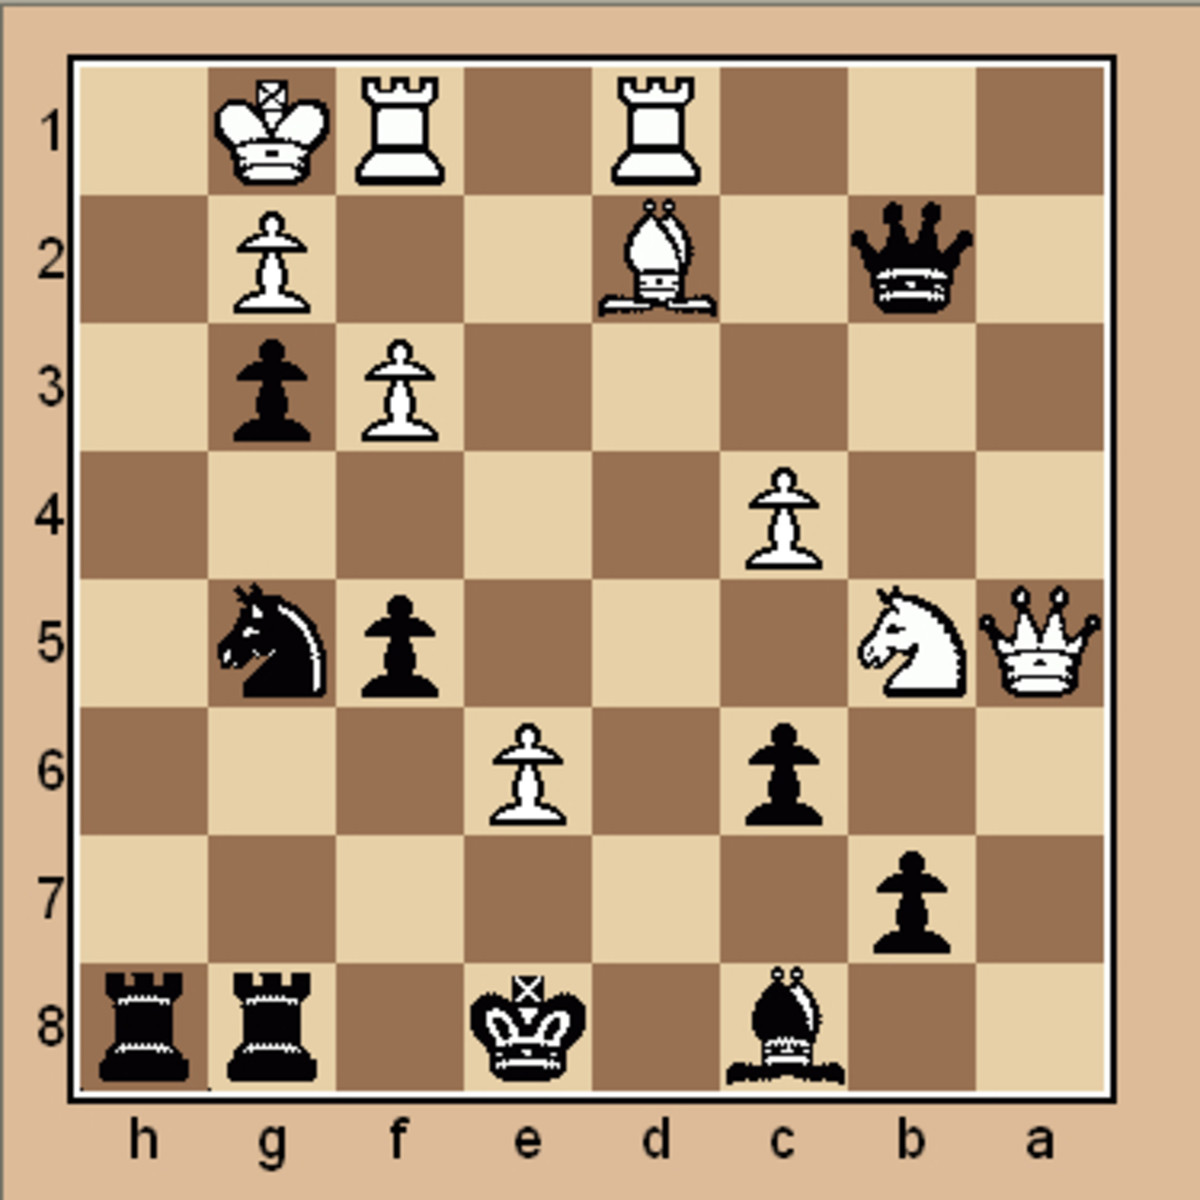 Mate in 3 chess puzzle (Click to enlarge)